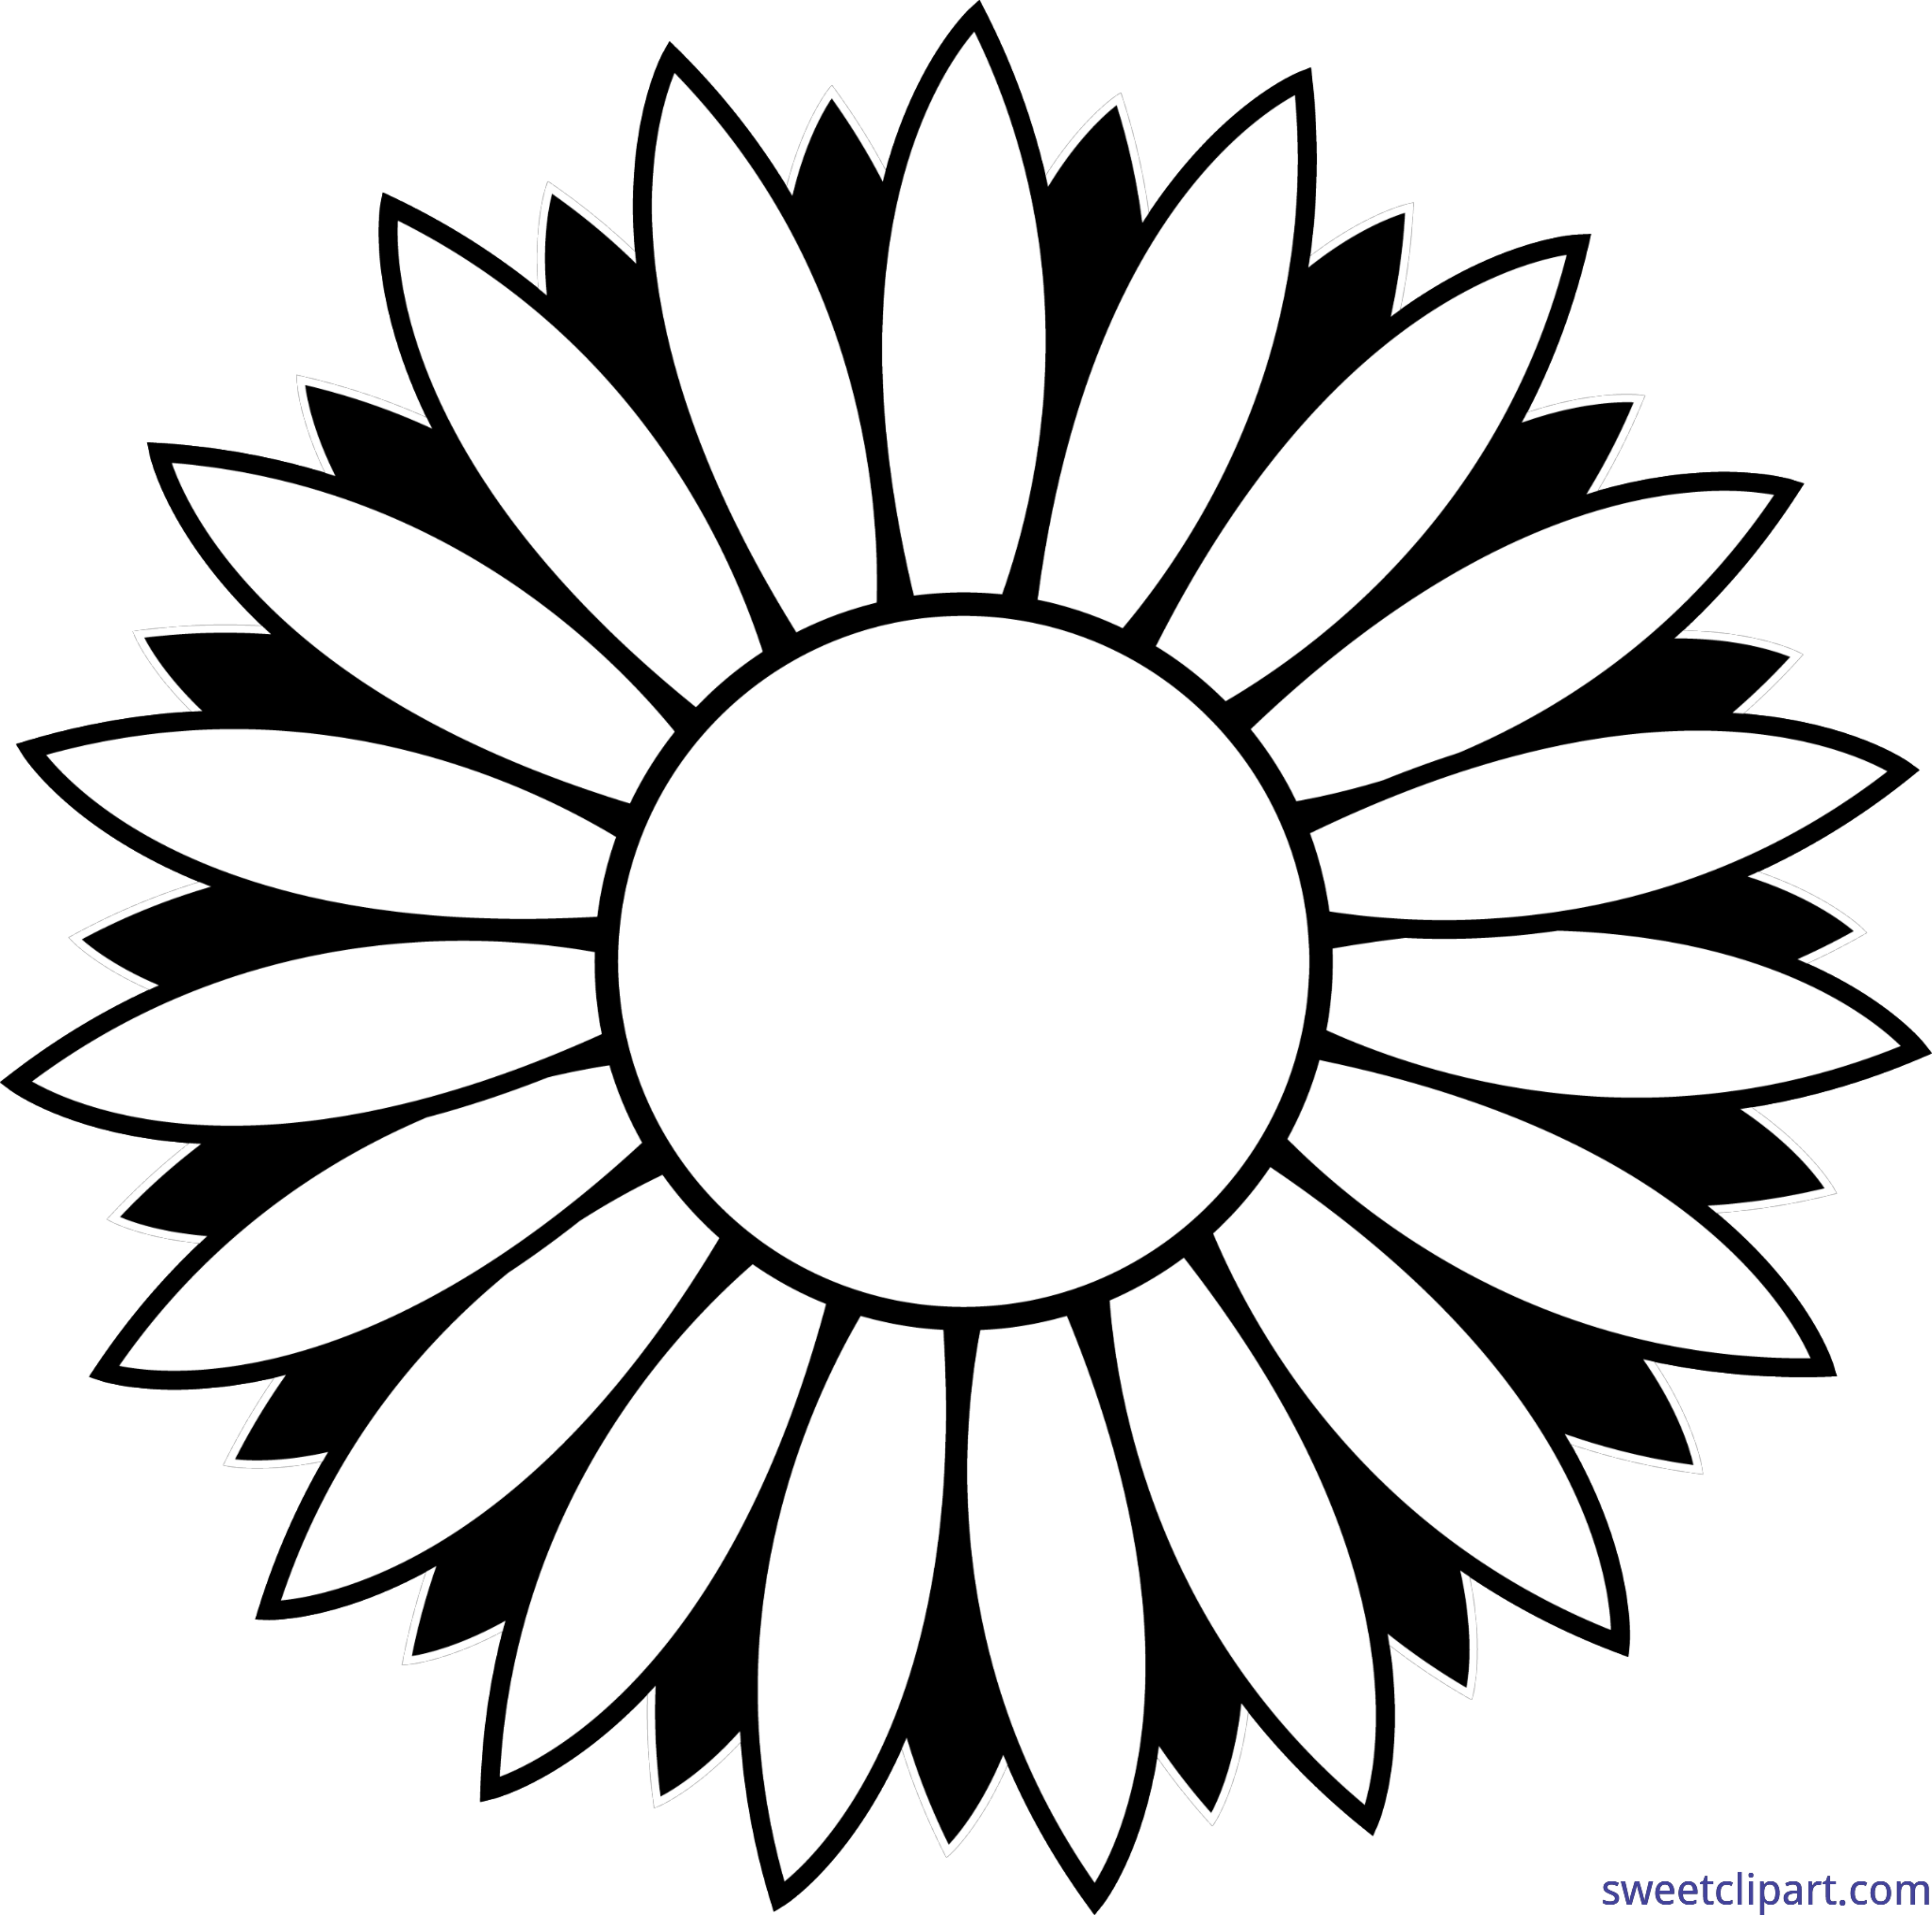 Flower Sunflower Black And White Lineart Clip Art.